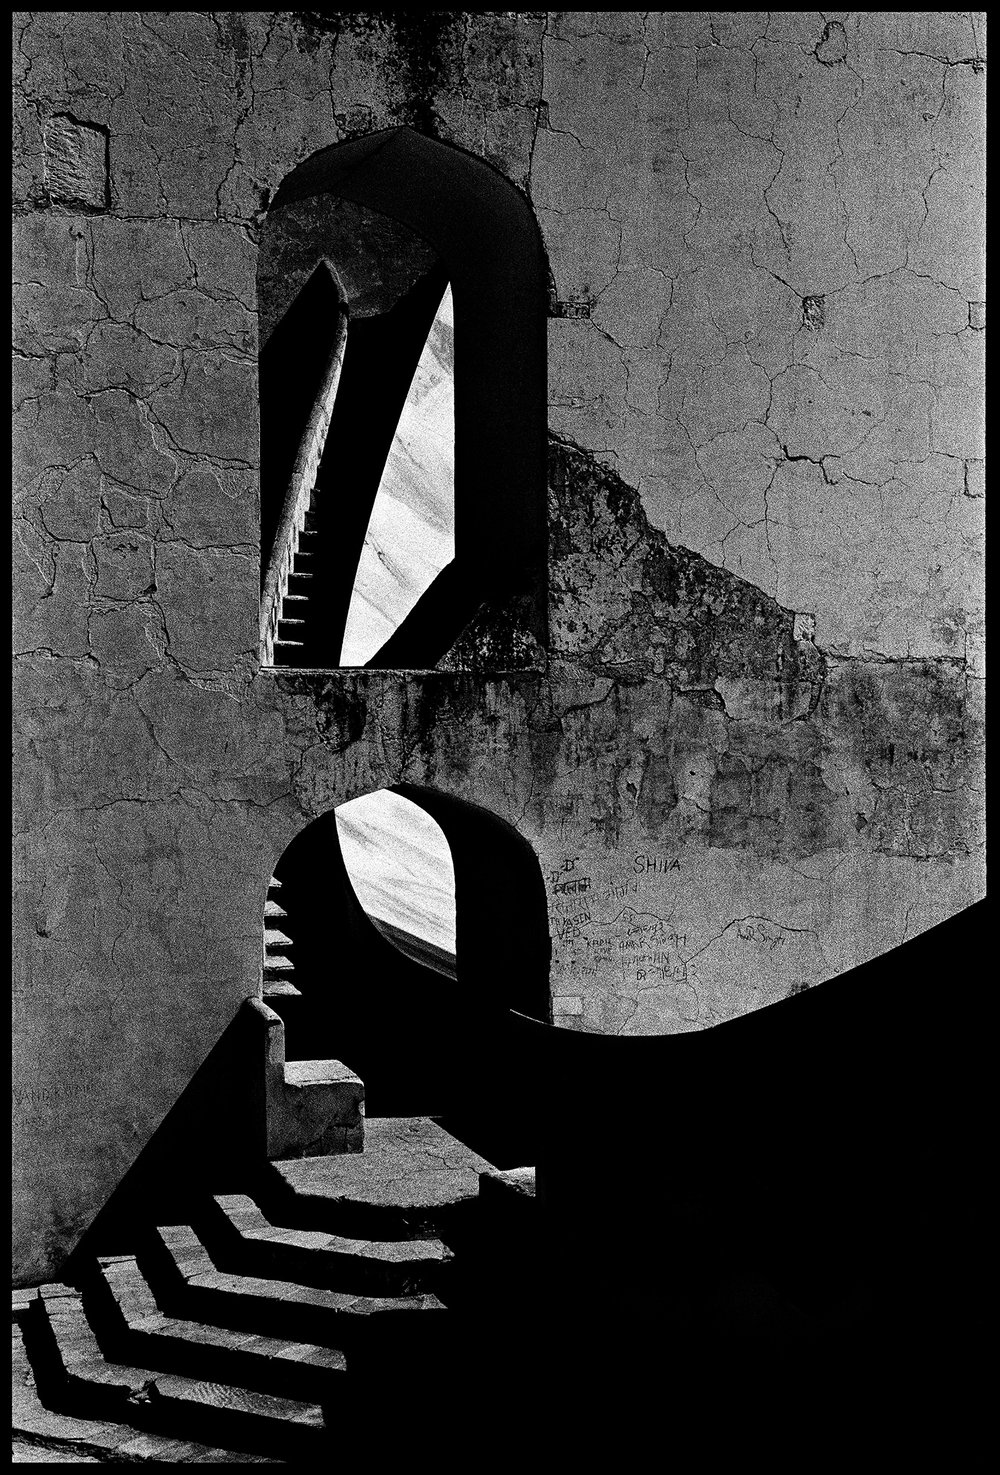 132_GALLERY_Jantar-Mantar-59_SURFACEMAG-SIMON-CHAPUT-PHOTOGRAPHY.jpg